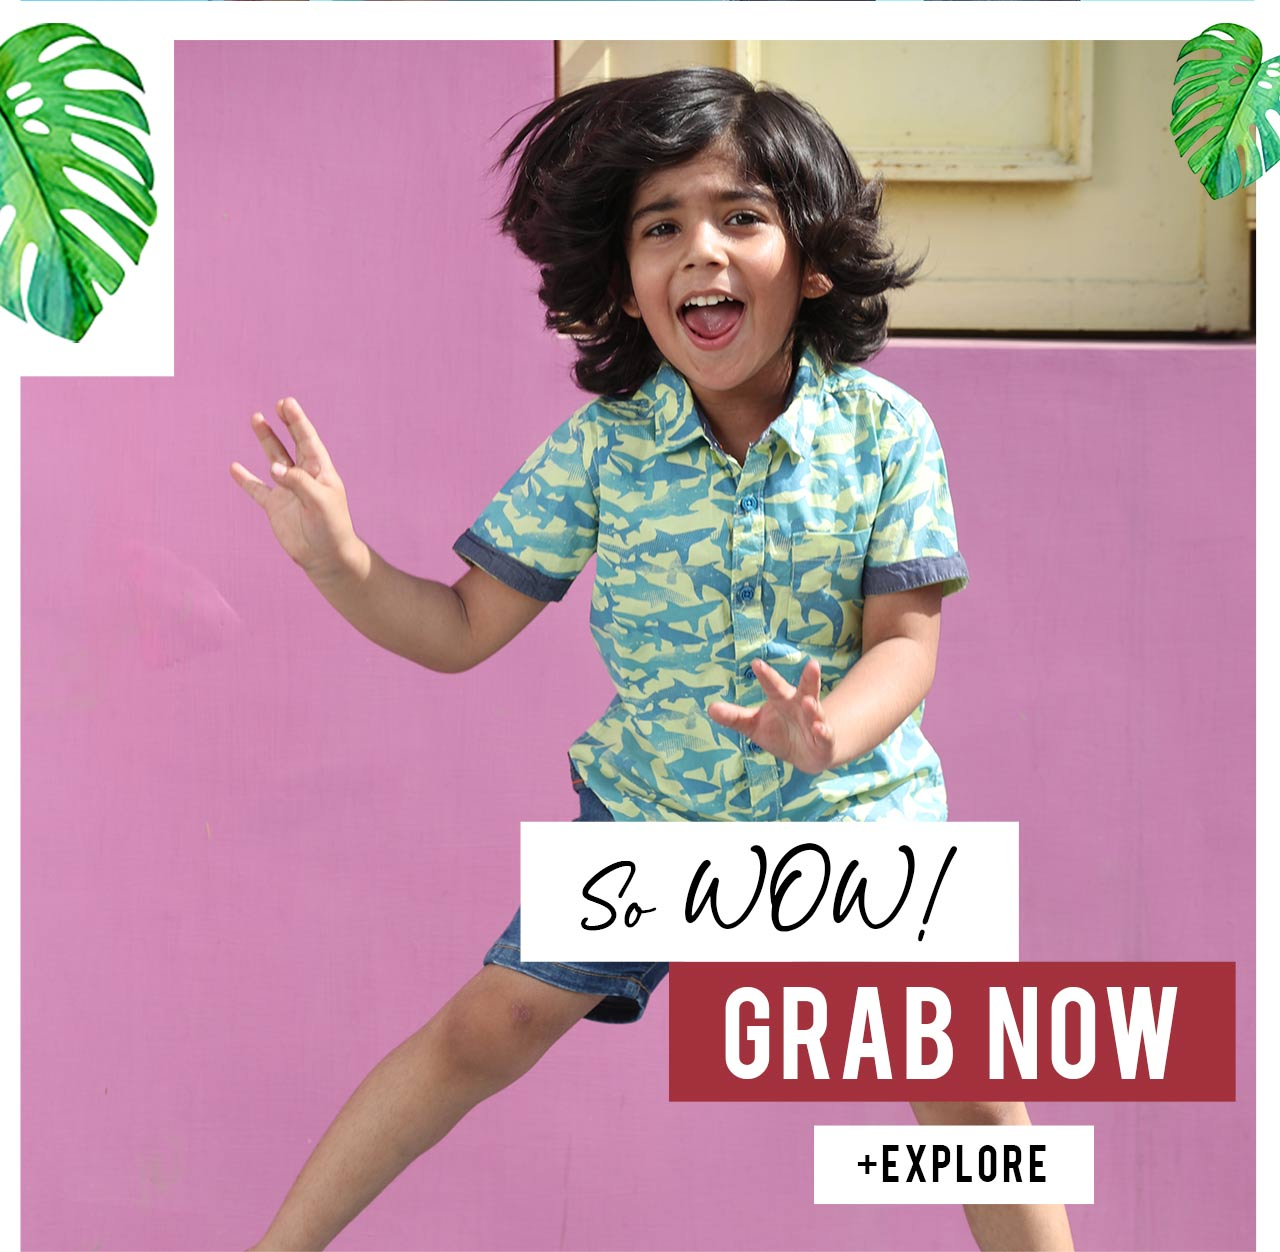 So WOW Grab Now